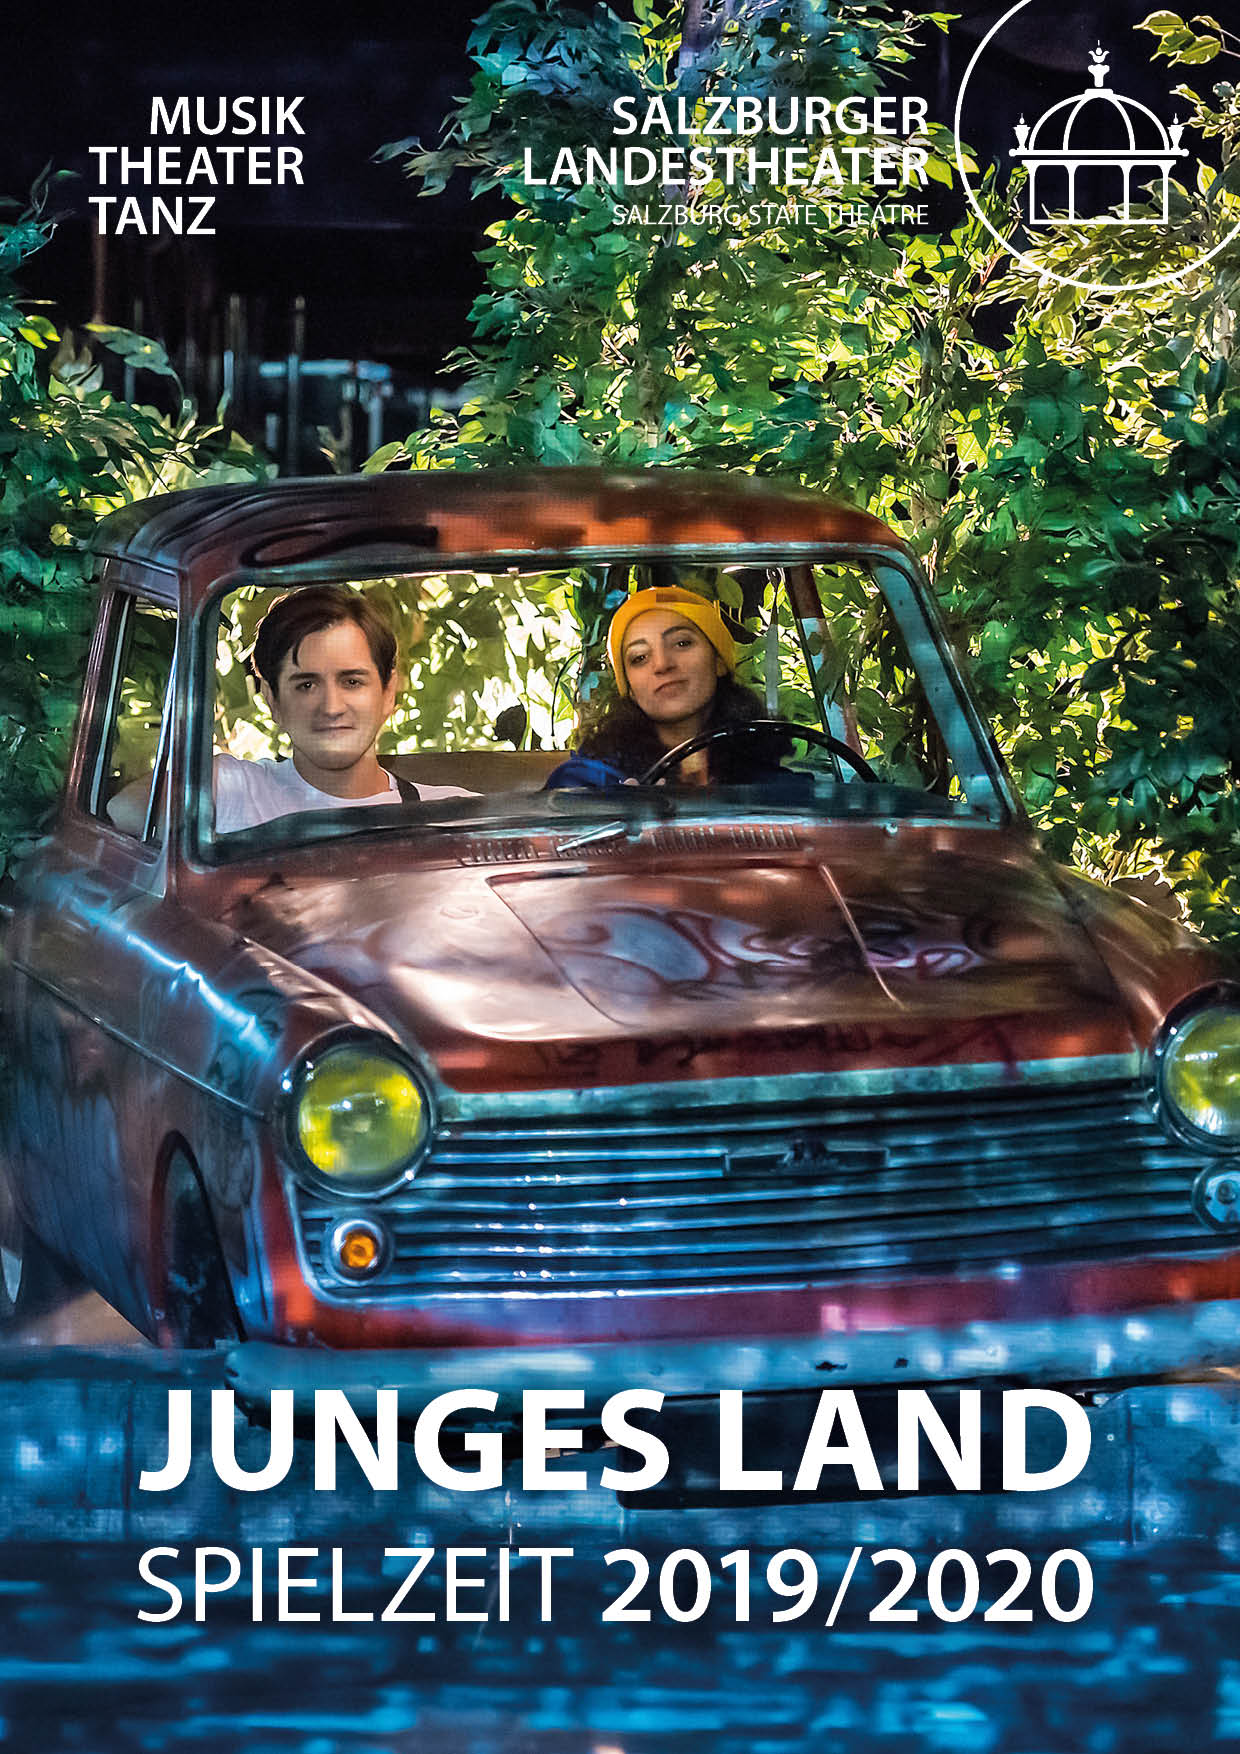 Junges Land 2019/2020